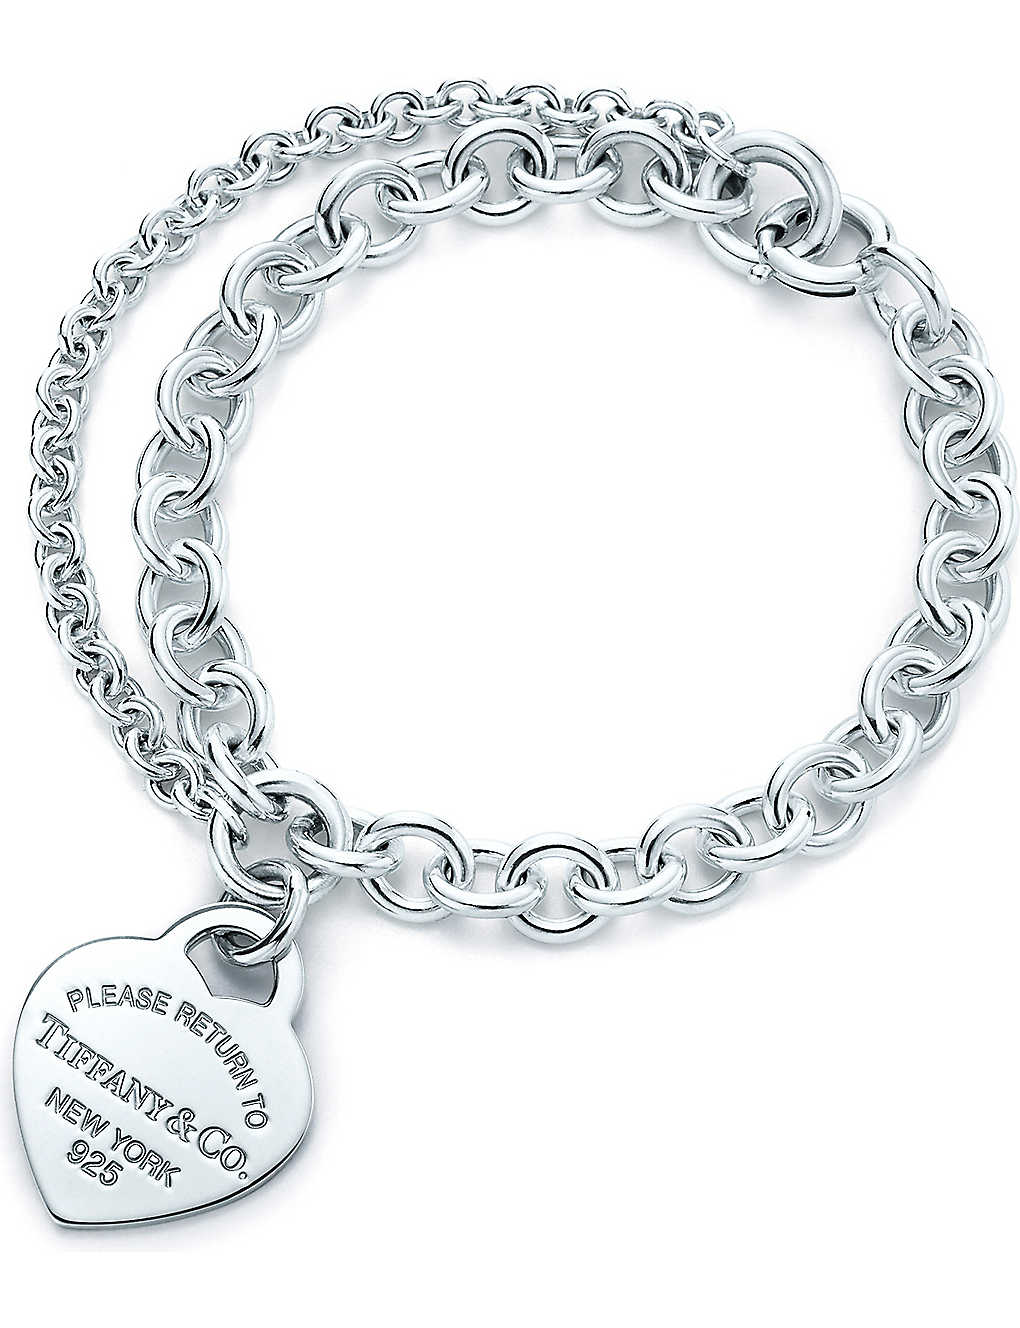 0c7afeb0a TIFFANY & CO - Return to Tiffany heart tag charm double-chain ...